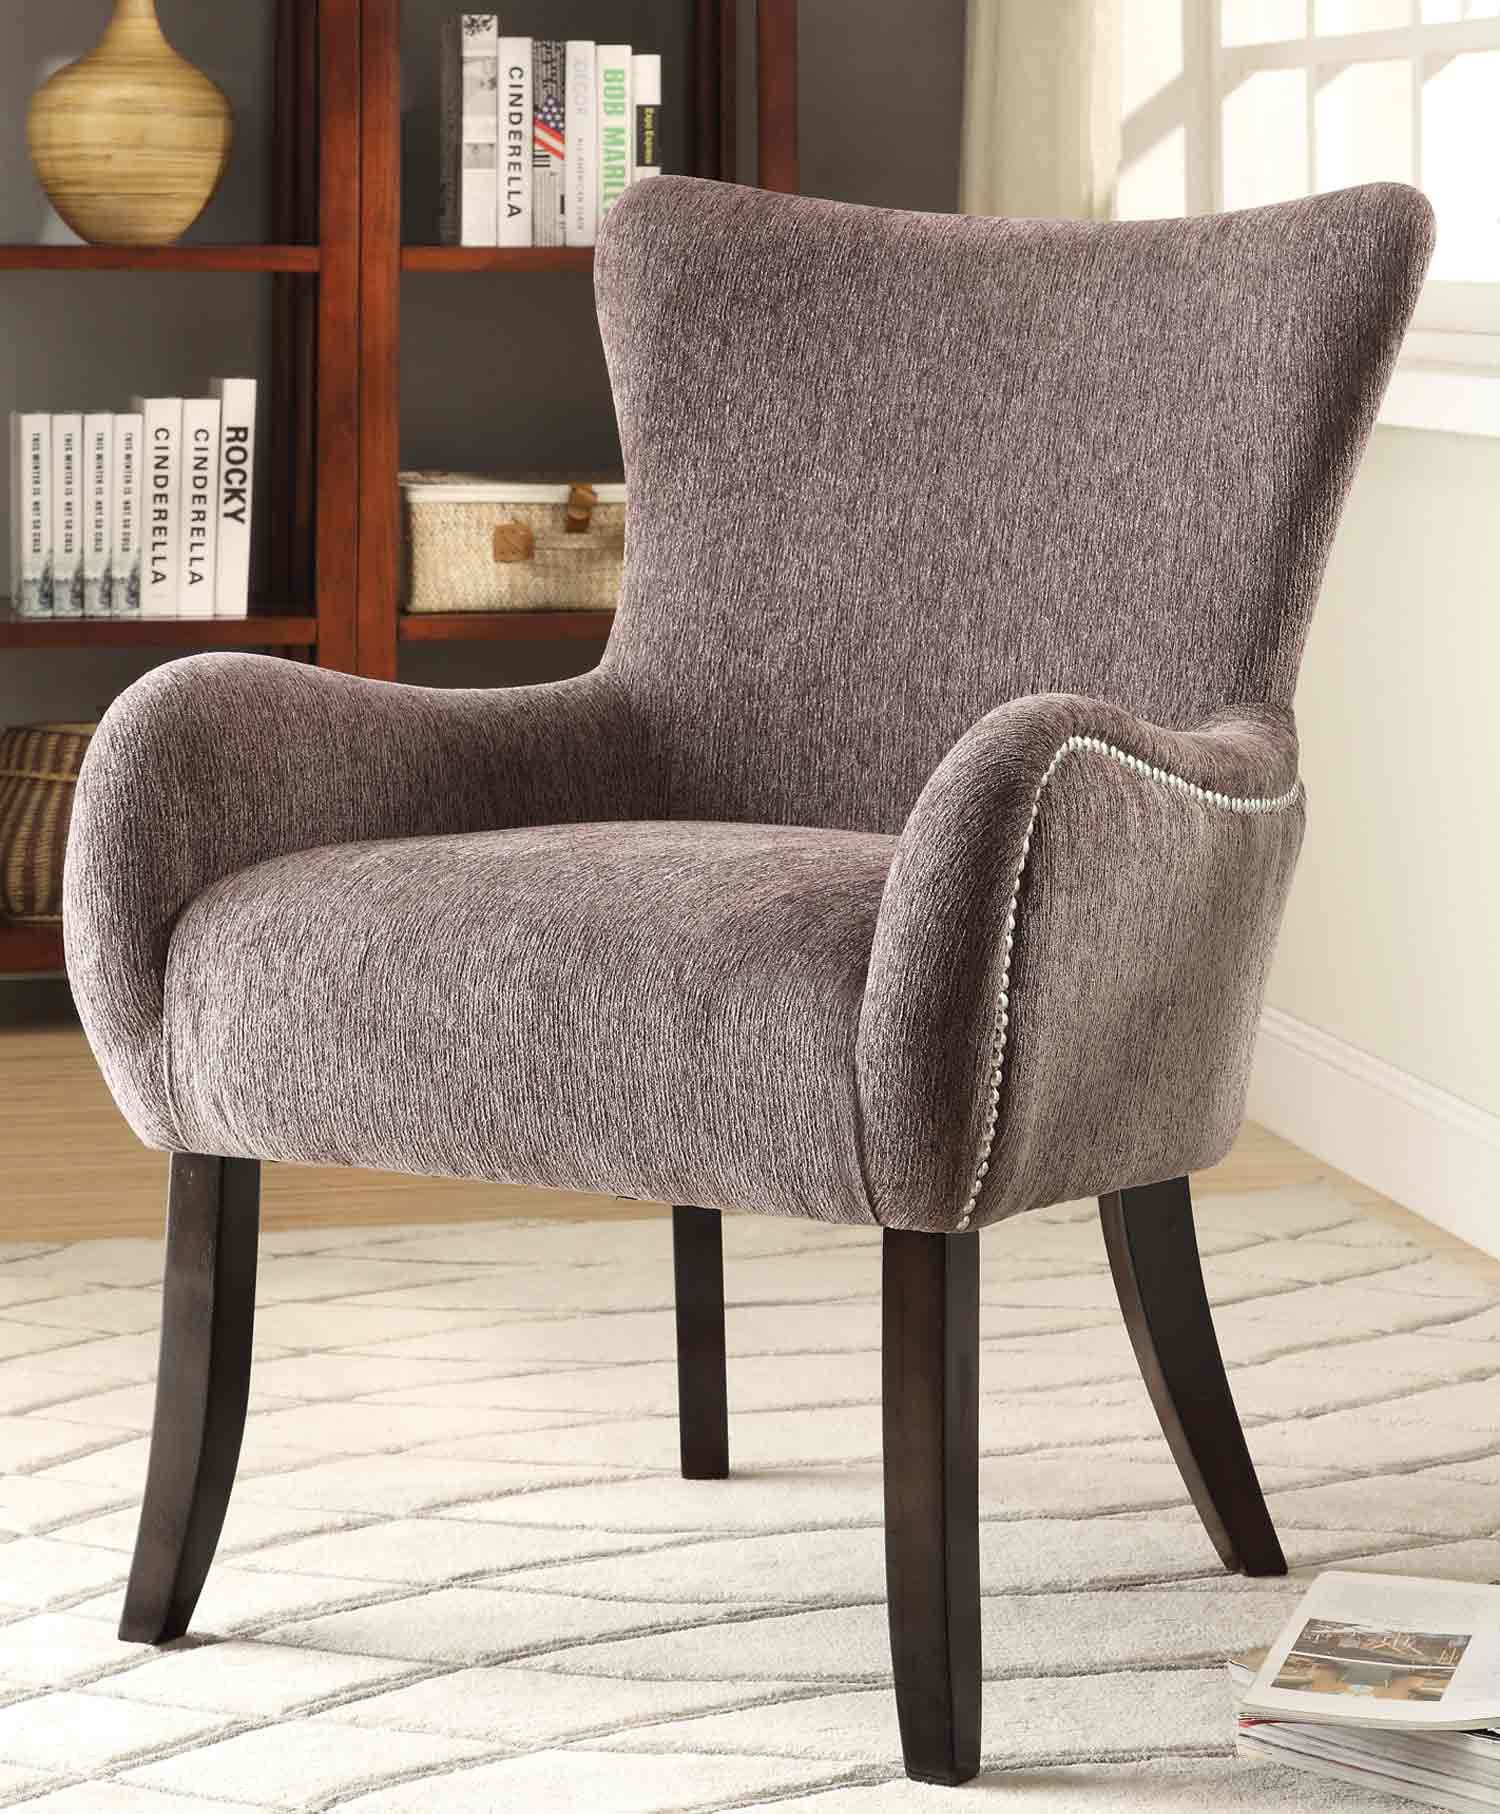 902504 Accent Chair - Grey